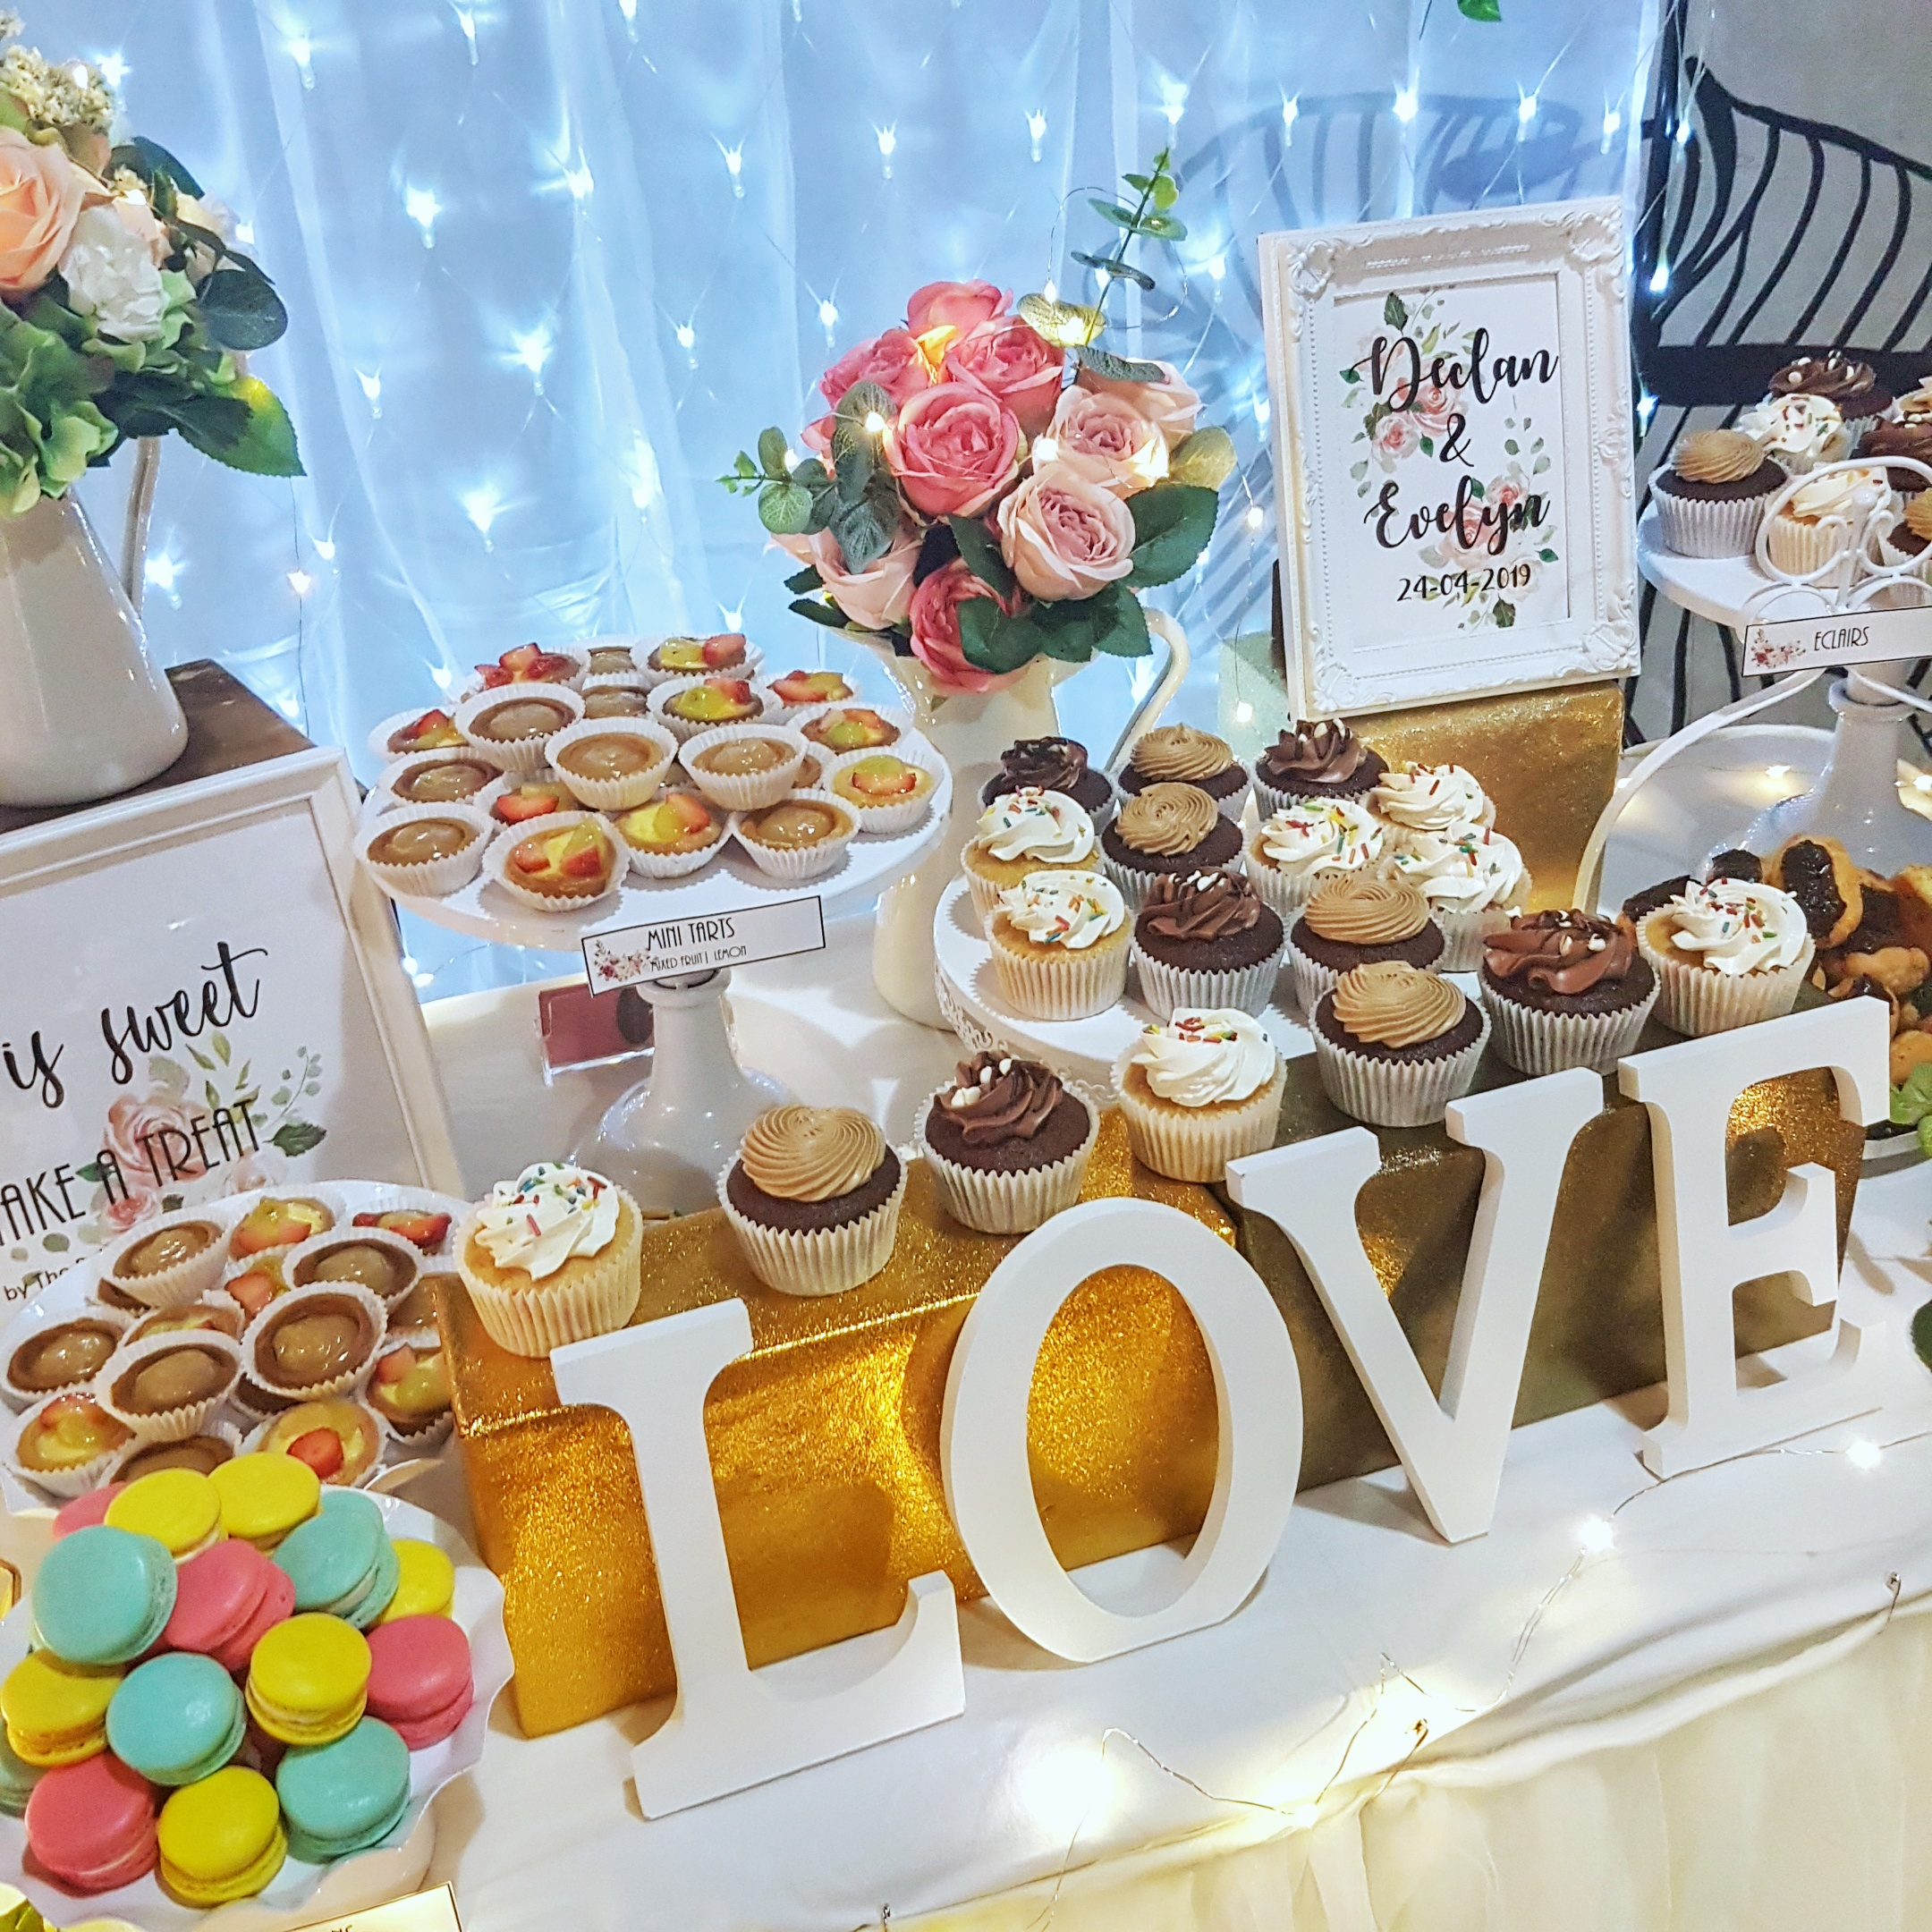 Wedding Dessert Table by The Baking Experiment